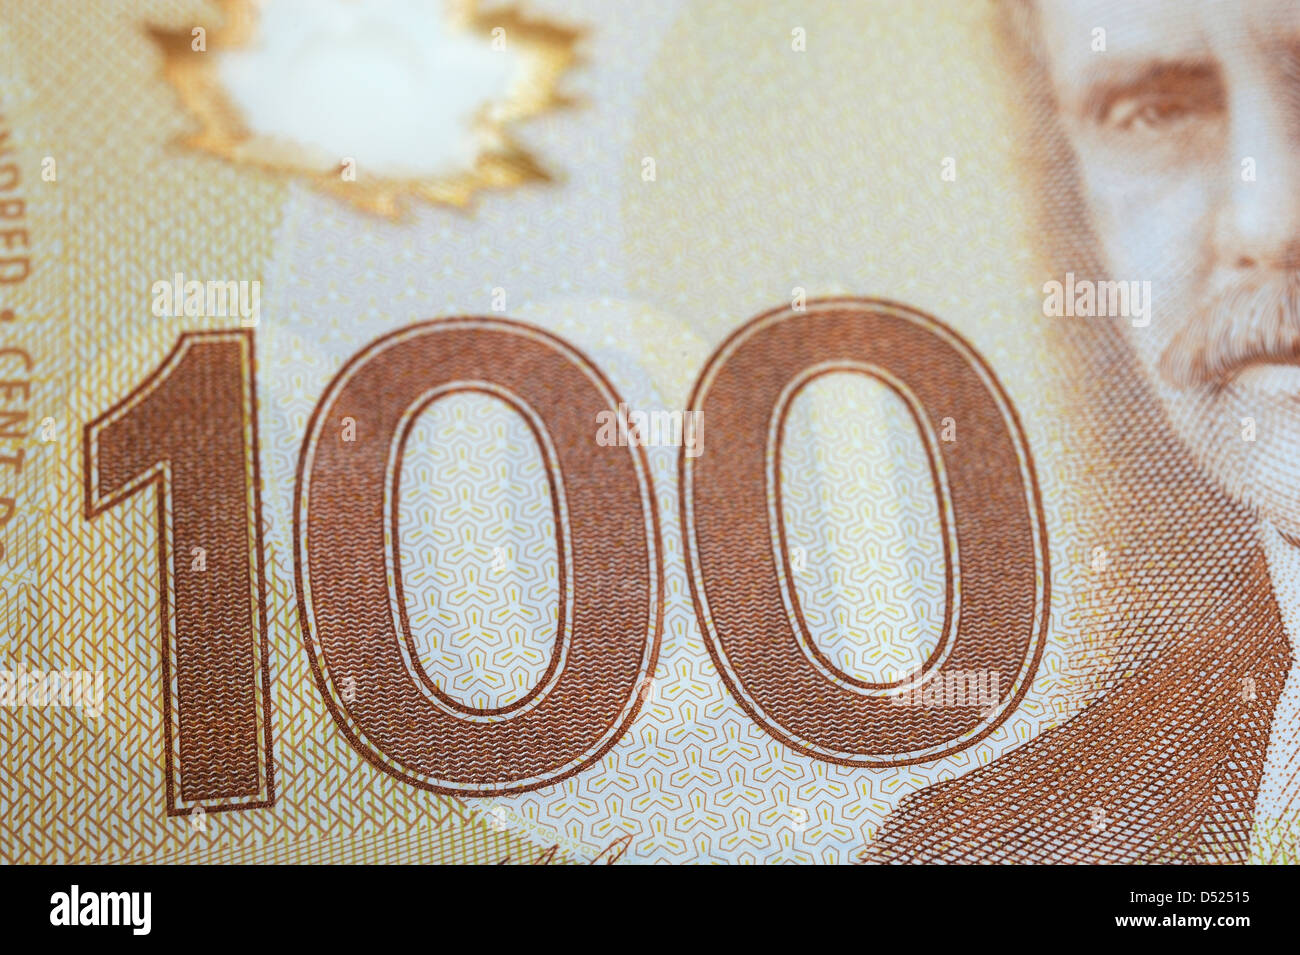 Canadian plastic one hundred dollar bill. - Stock Image